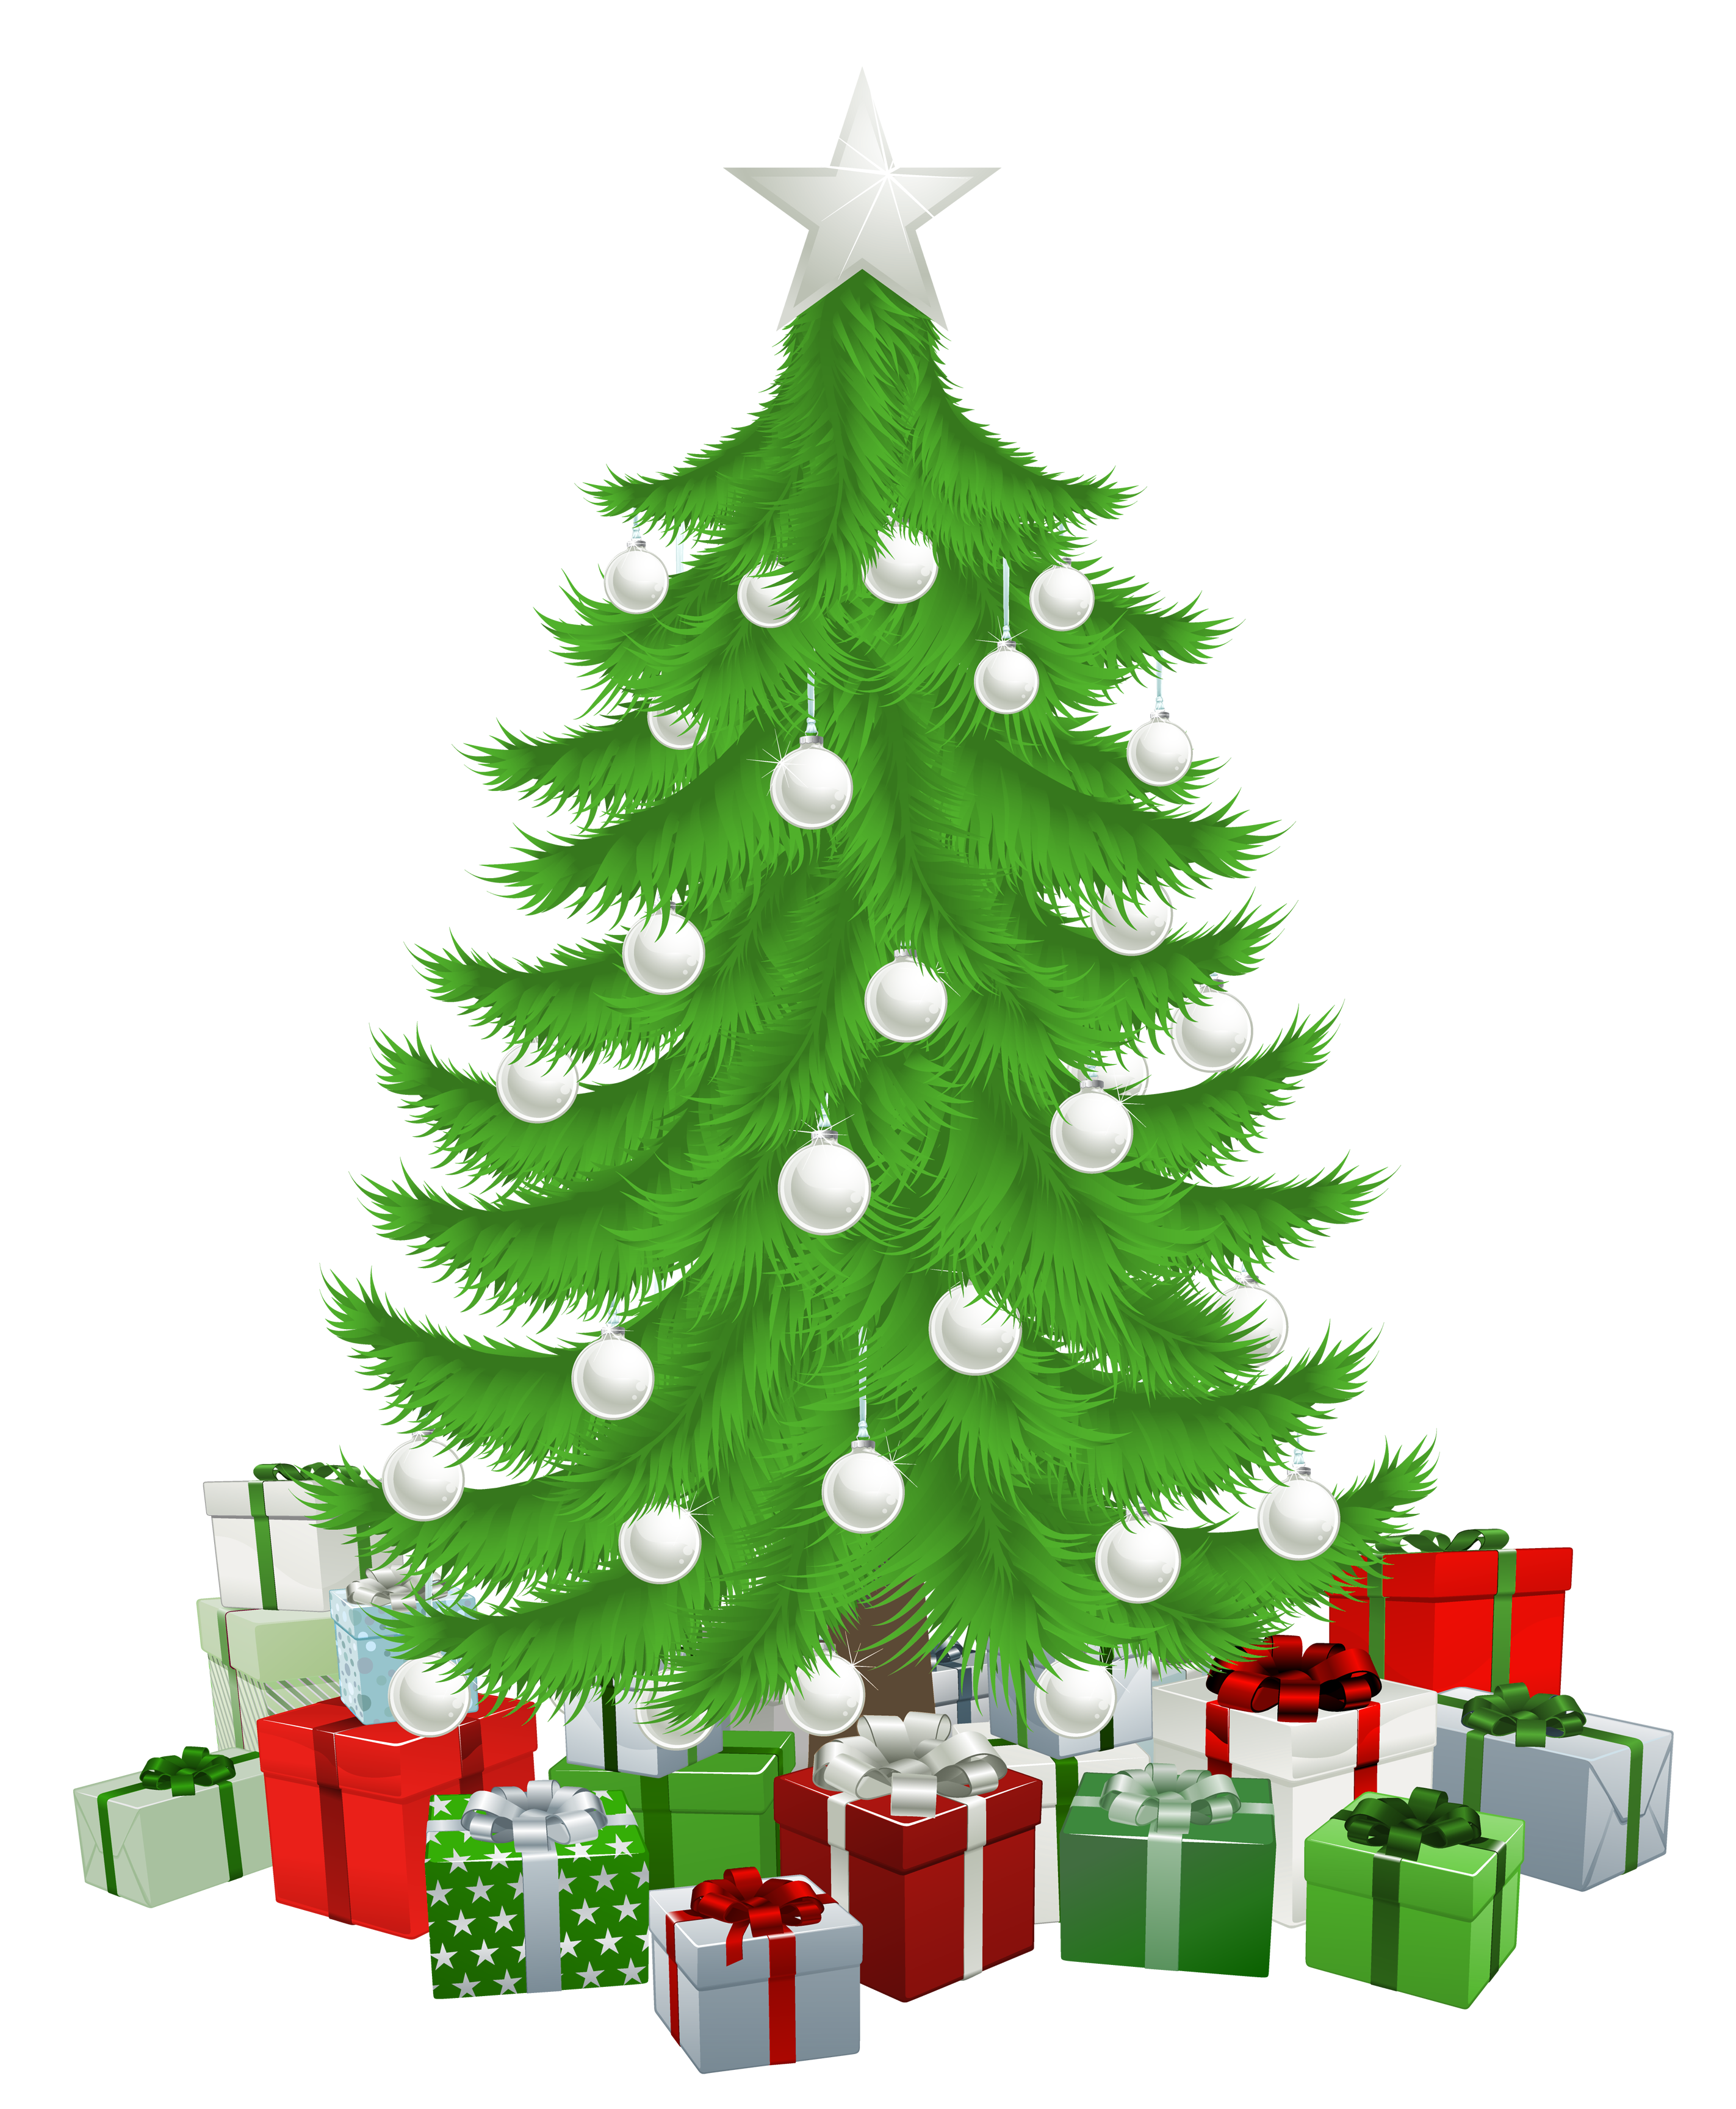 Transparent Christmas Tree with Presents Clipart Picture